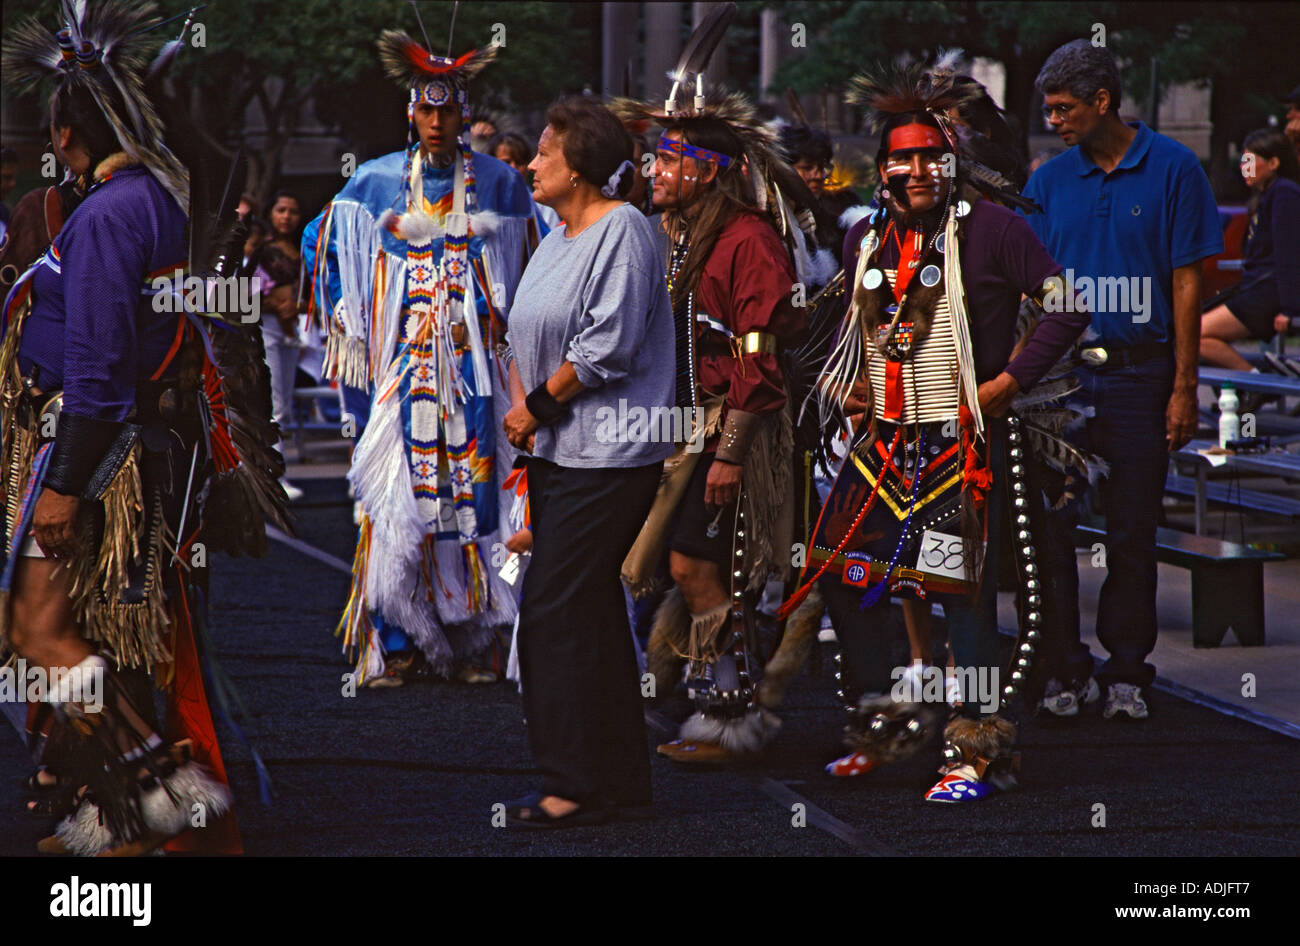 Tanzfestival der Ogalalla Sioux Dance of the Ogalalla Sioux - Stock Image